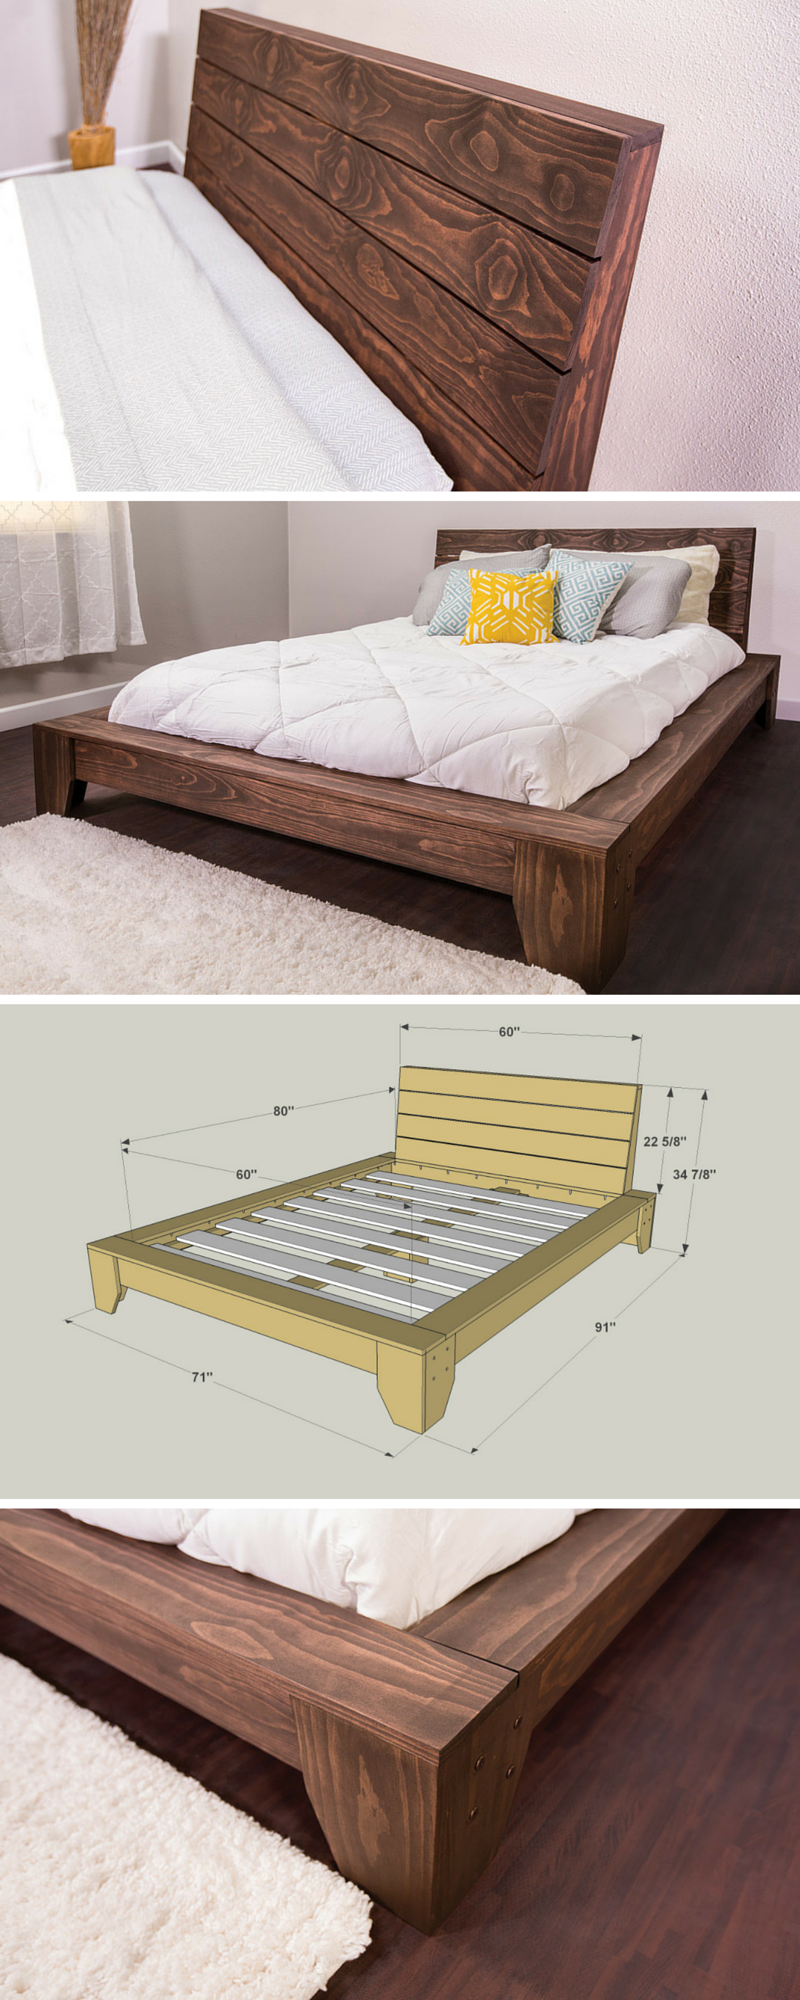 25 easy diy bed frame projects to upgrade your bedroom for Simple diy platform bed